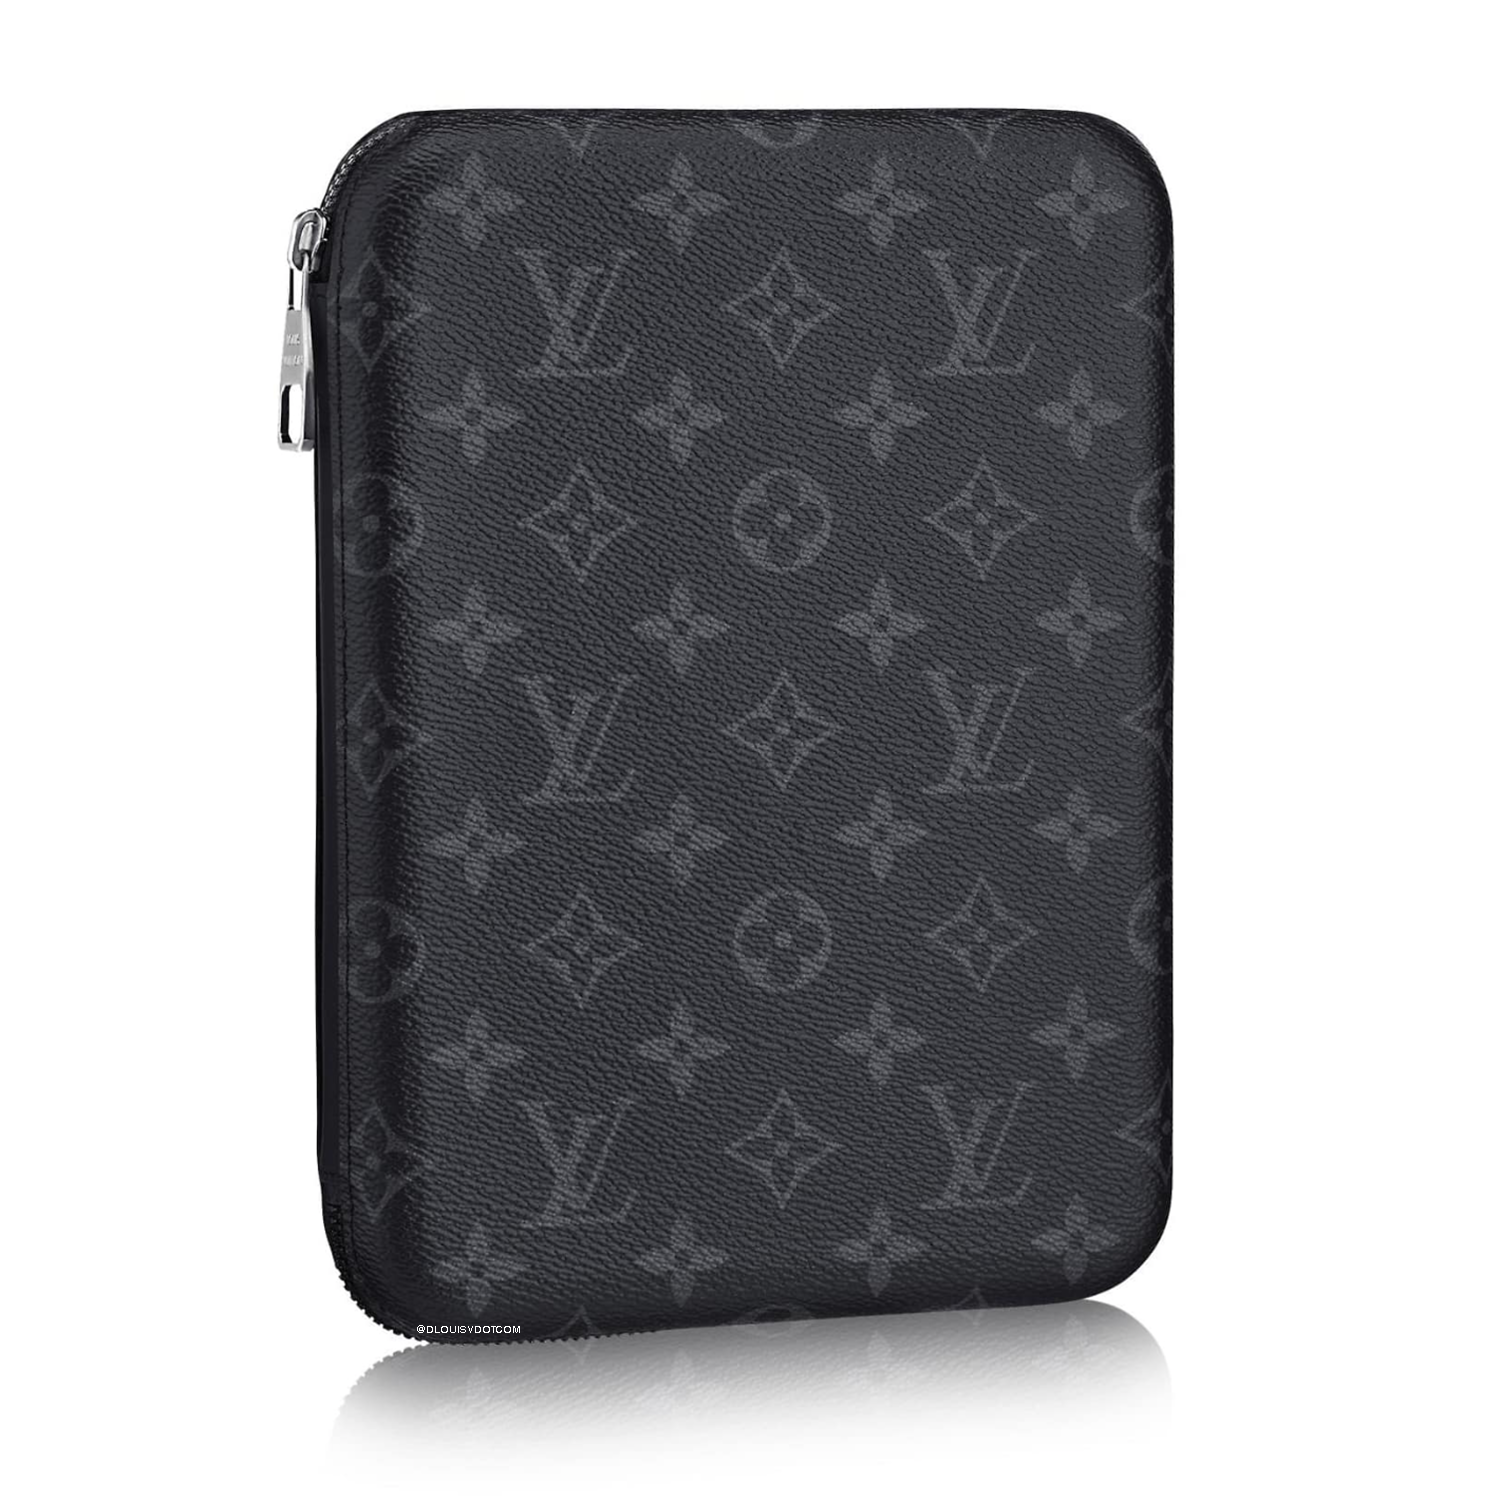 IPAD COVER BOX - €850 $M61870MONOGRAM ECLIPSE